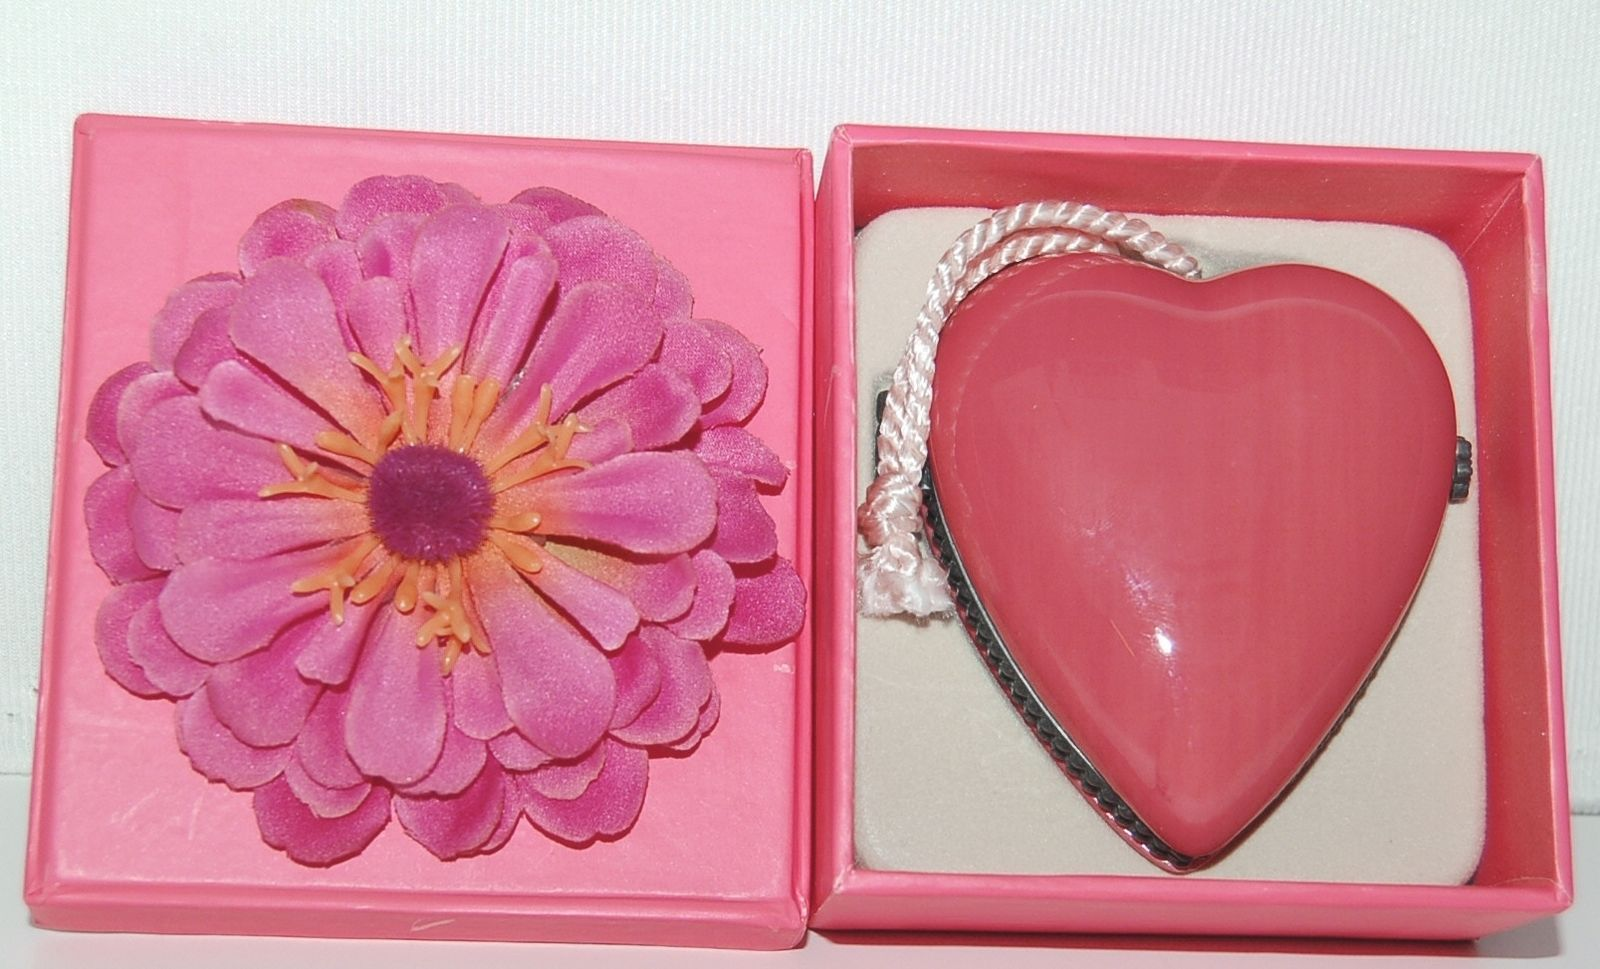 Hallmark 1NPA1246 Signature Picture Pocket Locket Keepsake Brink Pink